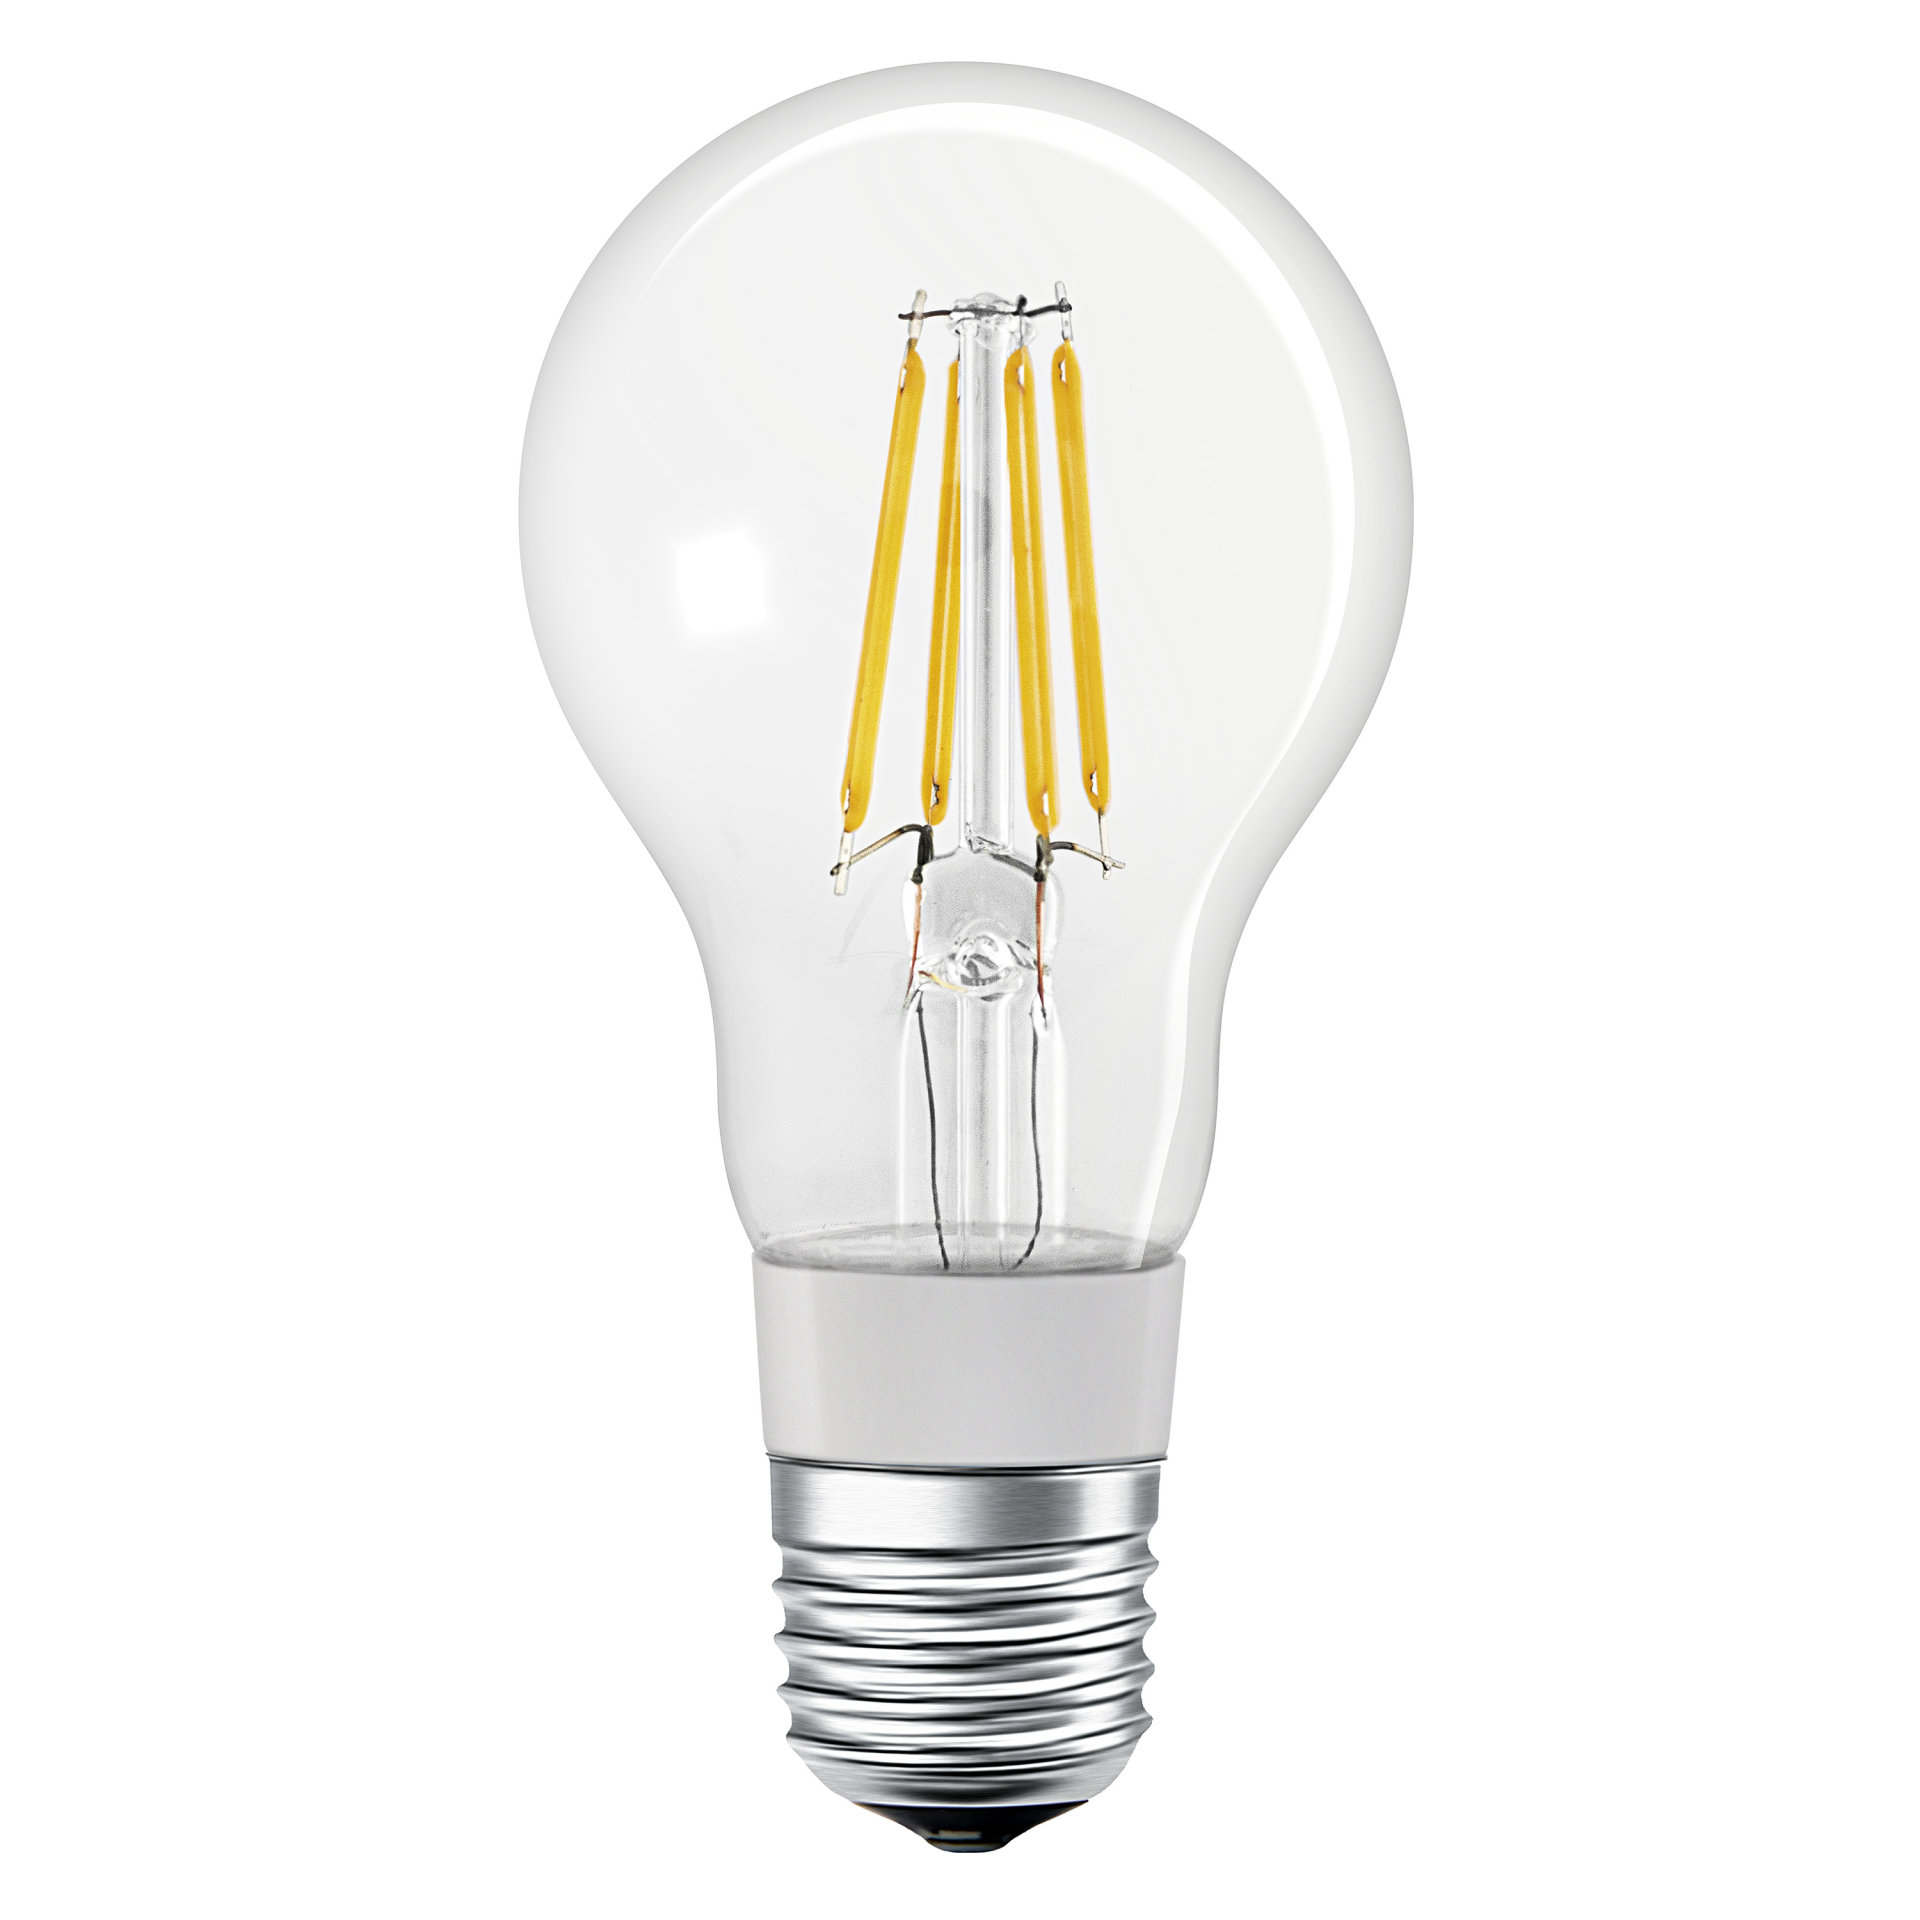 SMART+ Filament Classic Dimmable